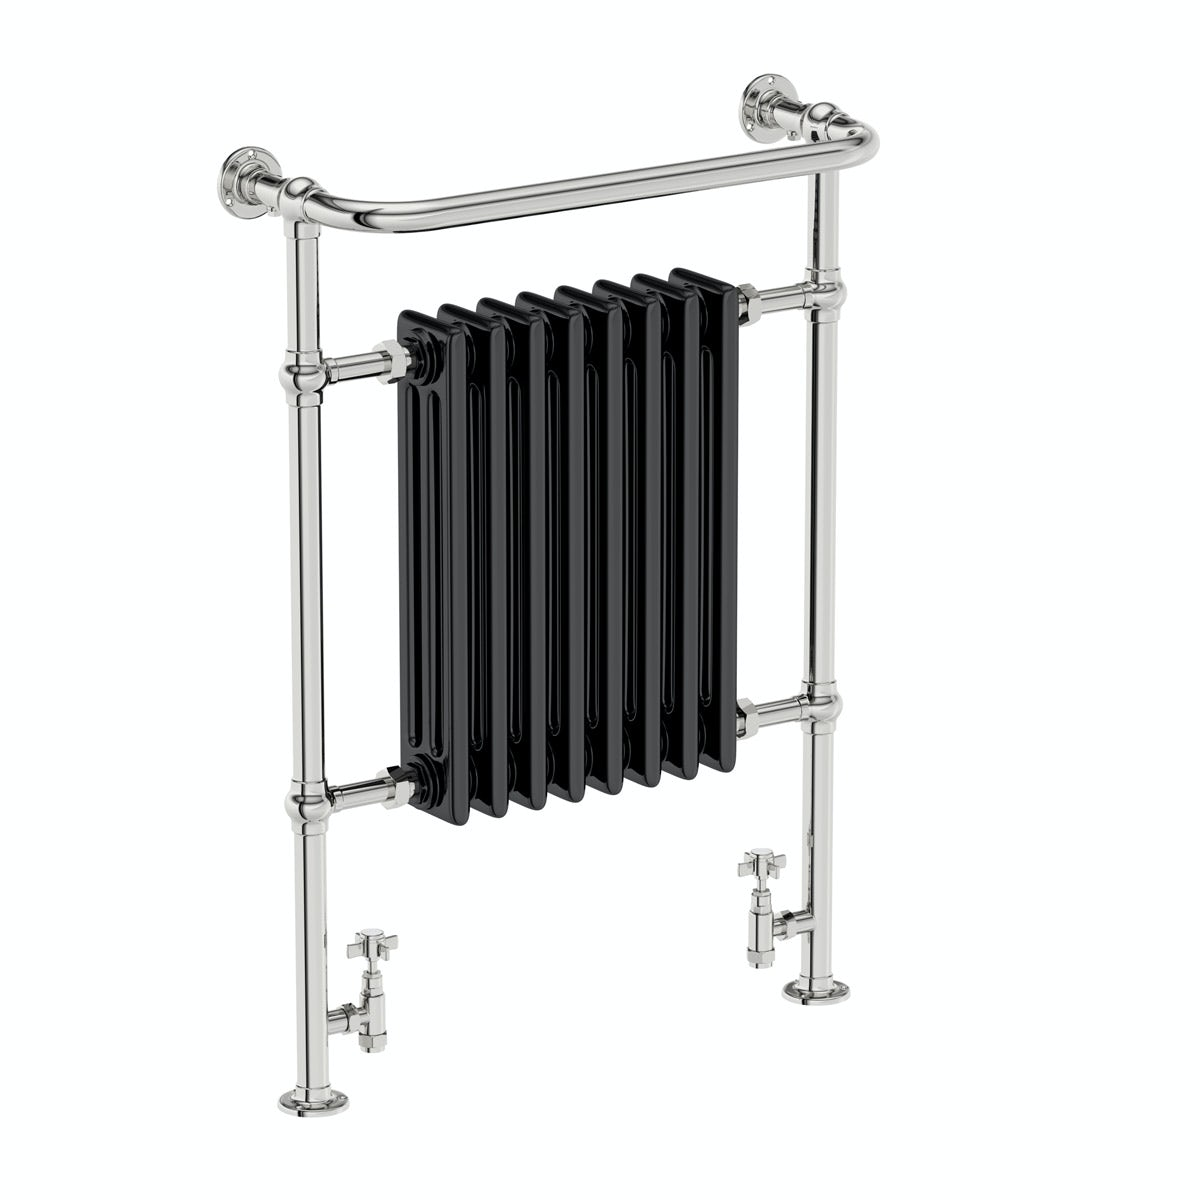 The Bath Co. Dulwich black traditional heated towel rail 952 x 659